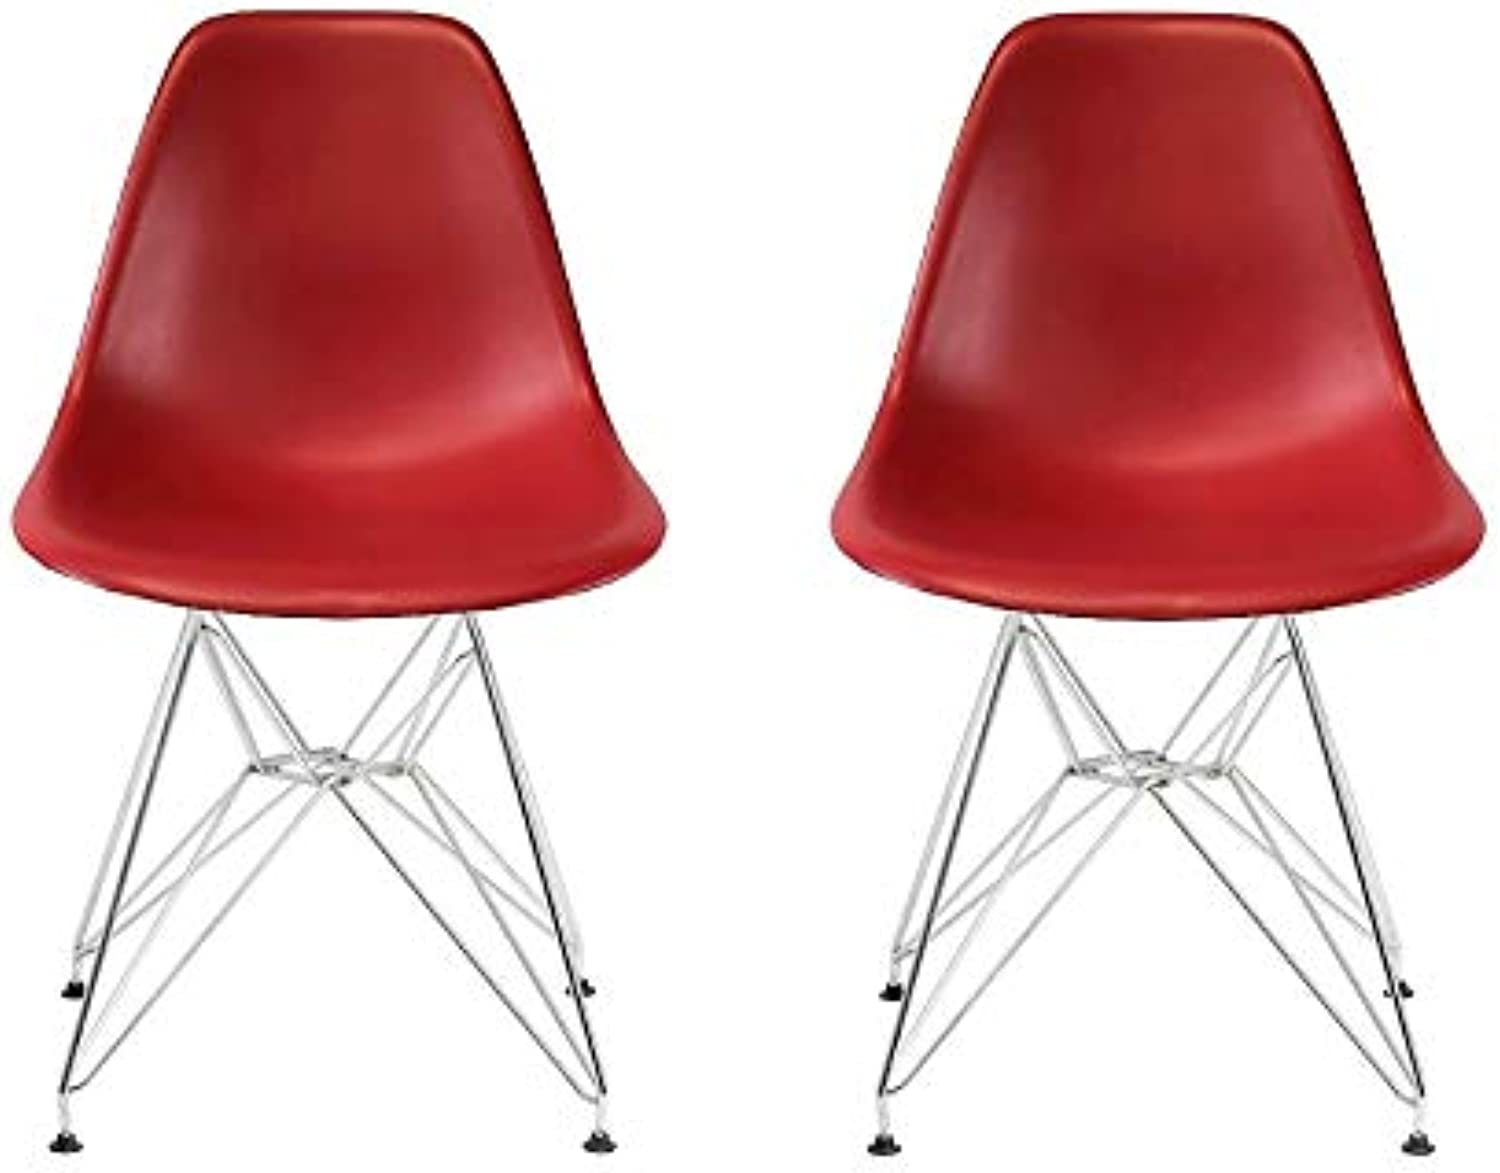 Take Me Home Furniture Eames Style Side Chair with Chrome Legs Eiffel Dining Room Chair - Set of 2 (Red)